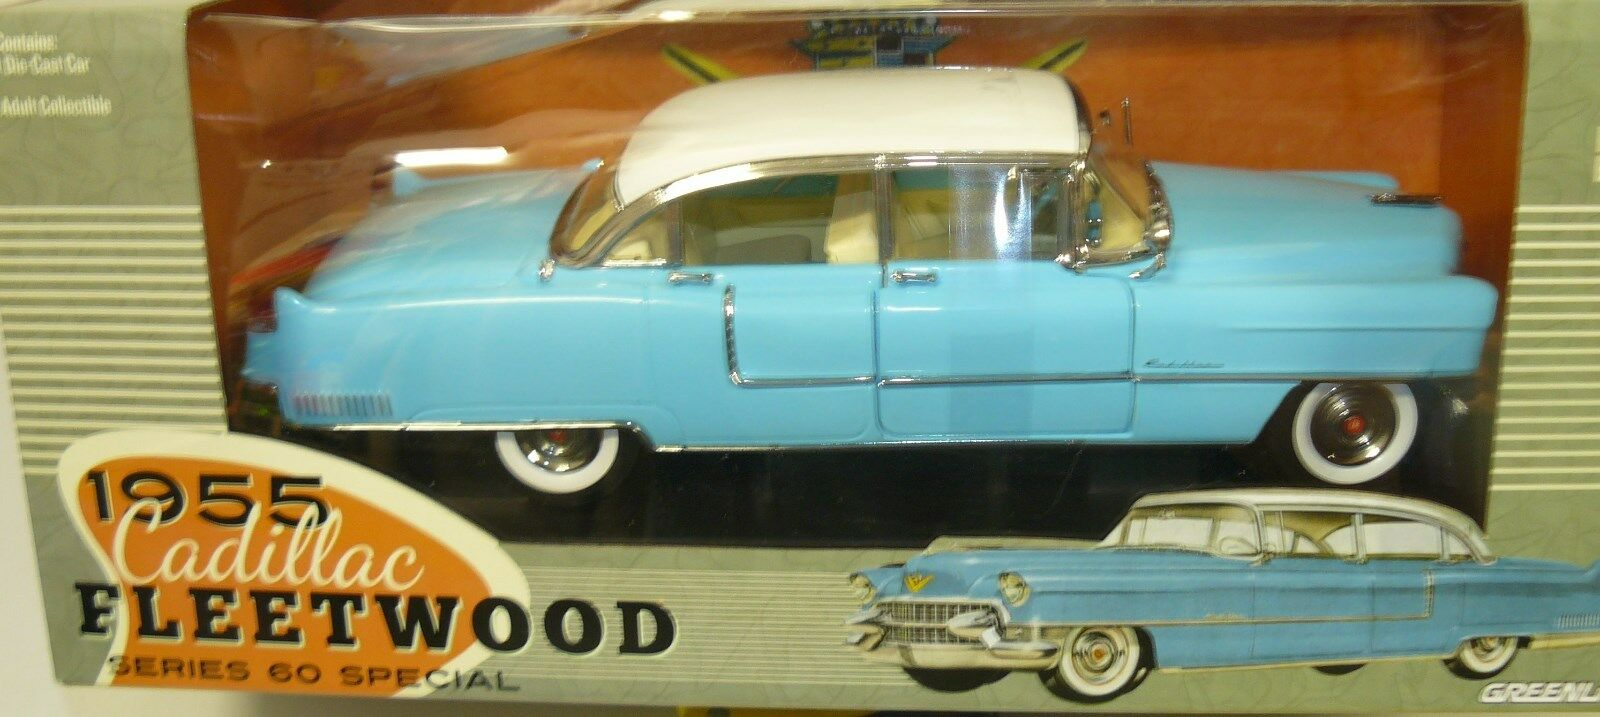 1 18 1955 Cadillac Fleetwood ,  in the box,  AS IS